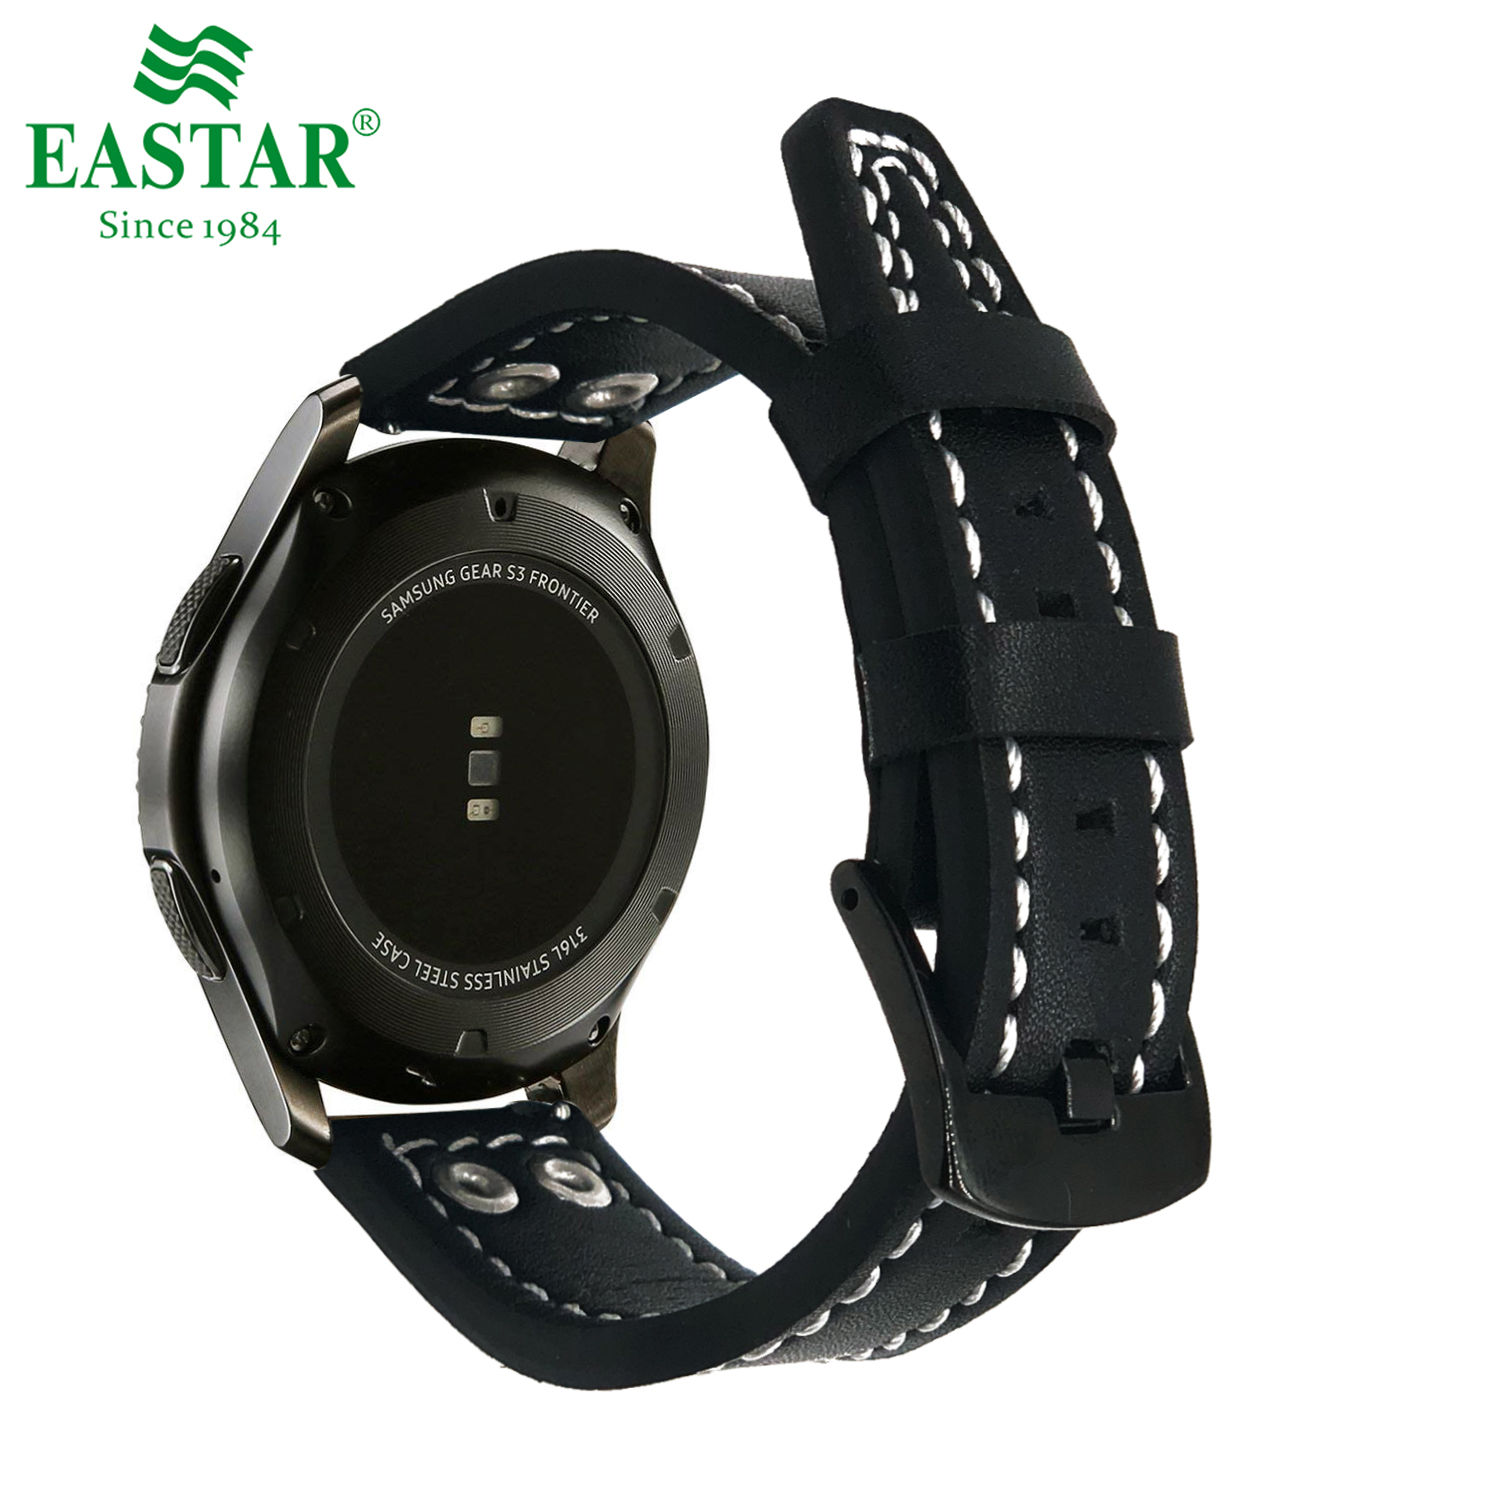 Eastar Genuine Leather Strap For Samsung Gear S3 Band Frontier Strap For Gear S3 Classic Watchband 22mm Watch BraceletEastar Genuine Leather Strap For Samsung Gear S3 Band Frontier Strap For Gear S3 Classic Watchband 22mm Watch Bracelet